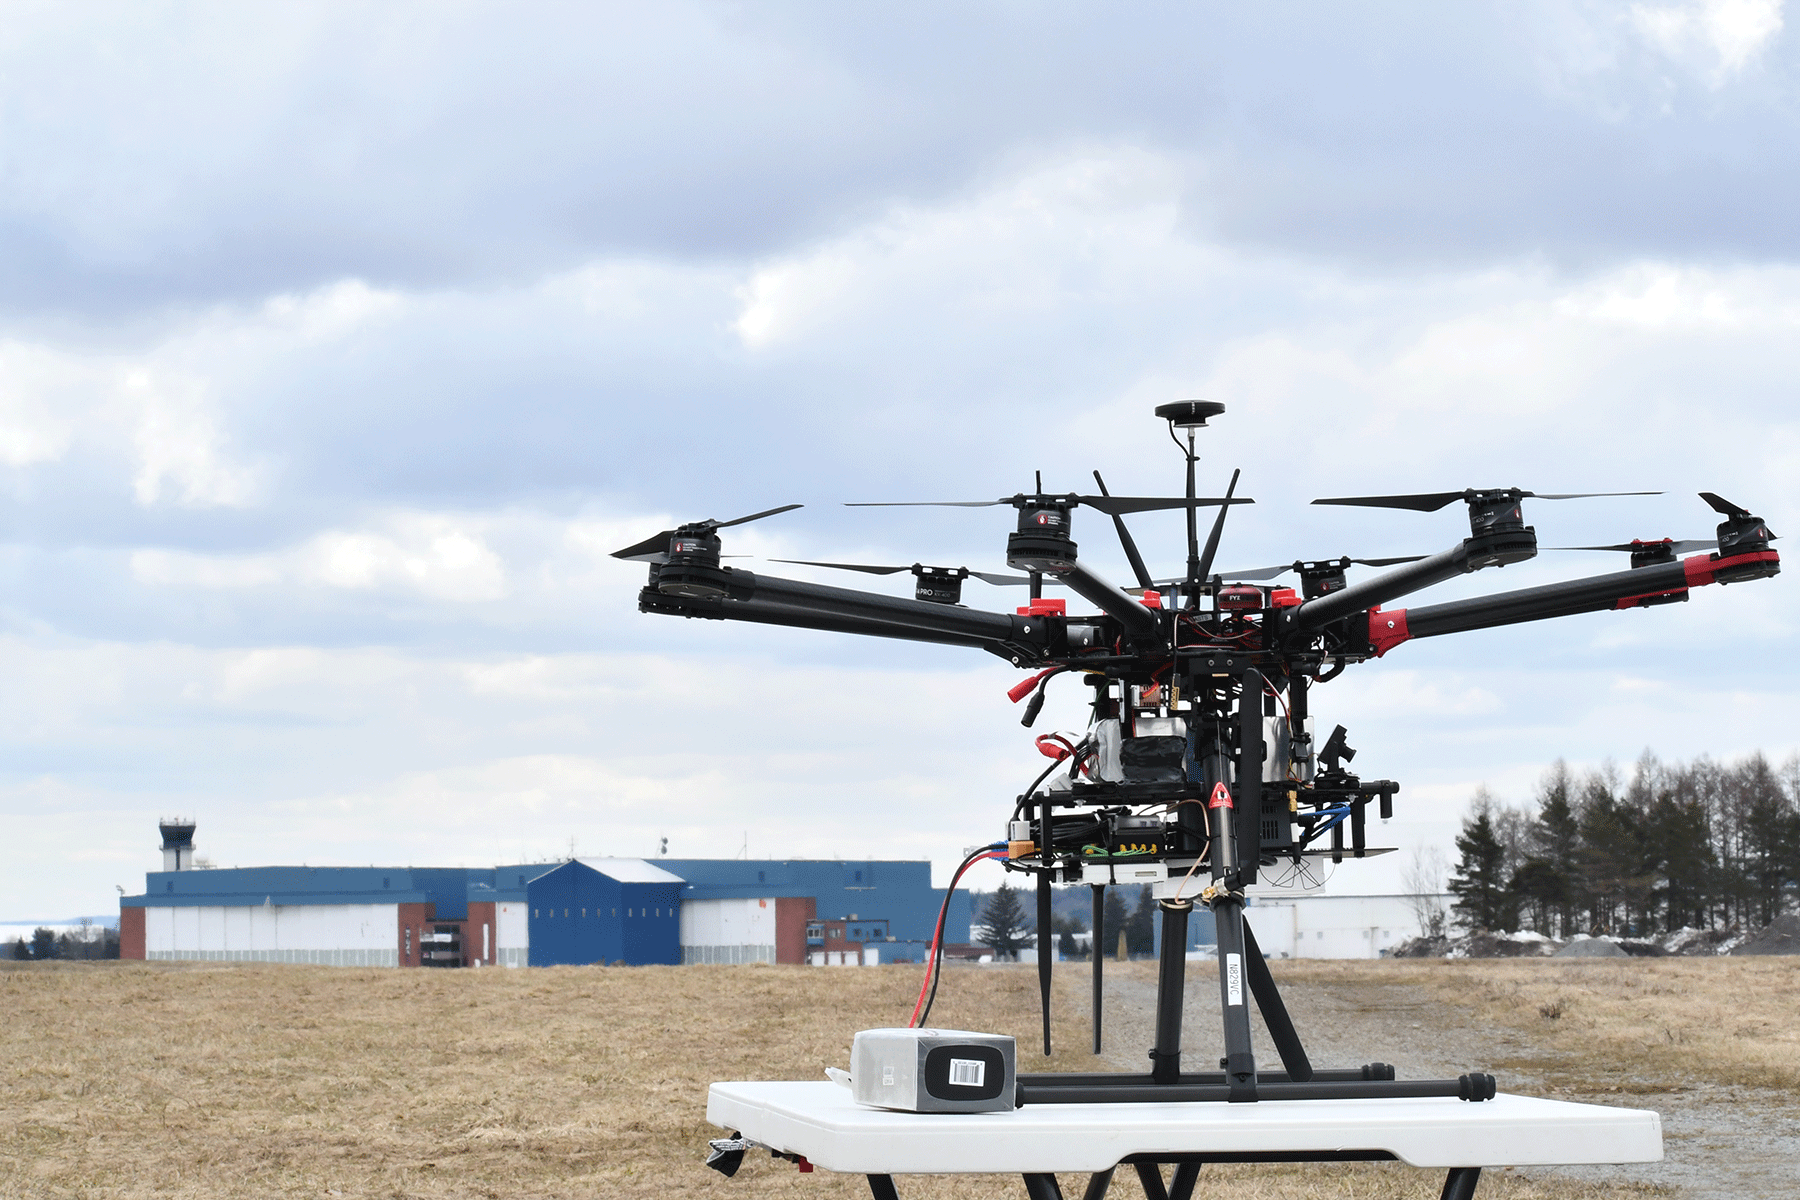 Drone Integration Work at NY UAS Test Site